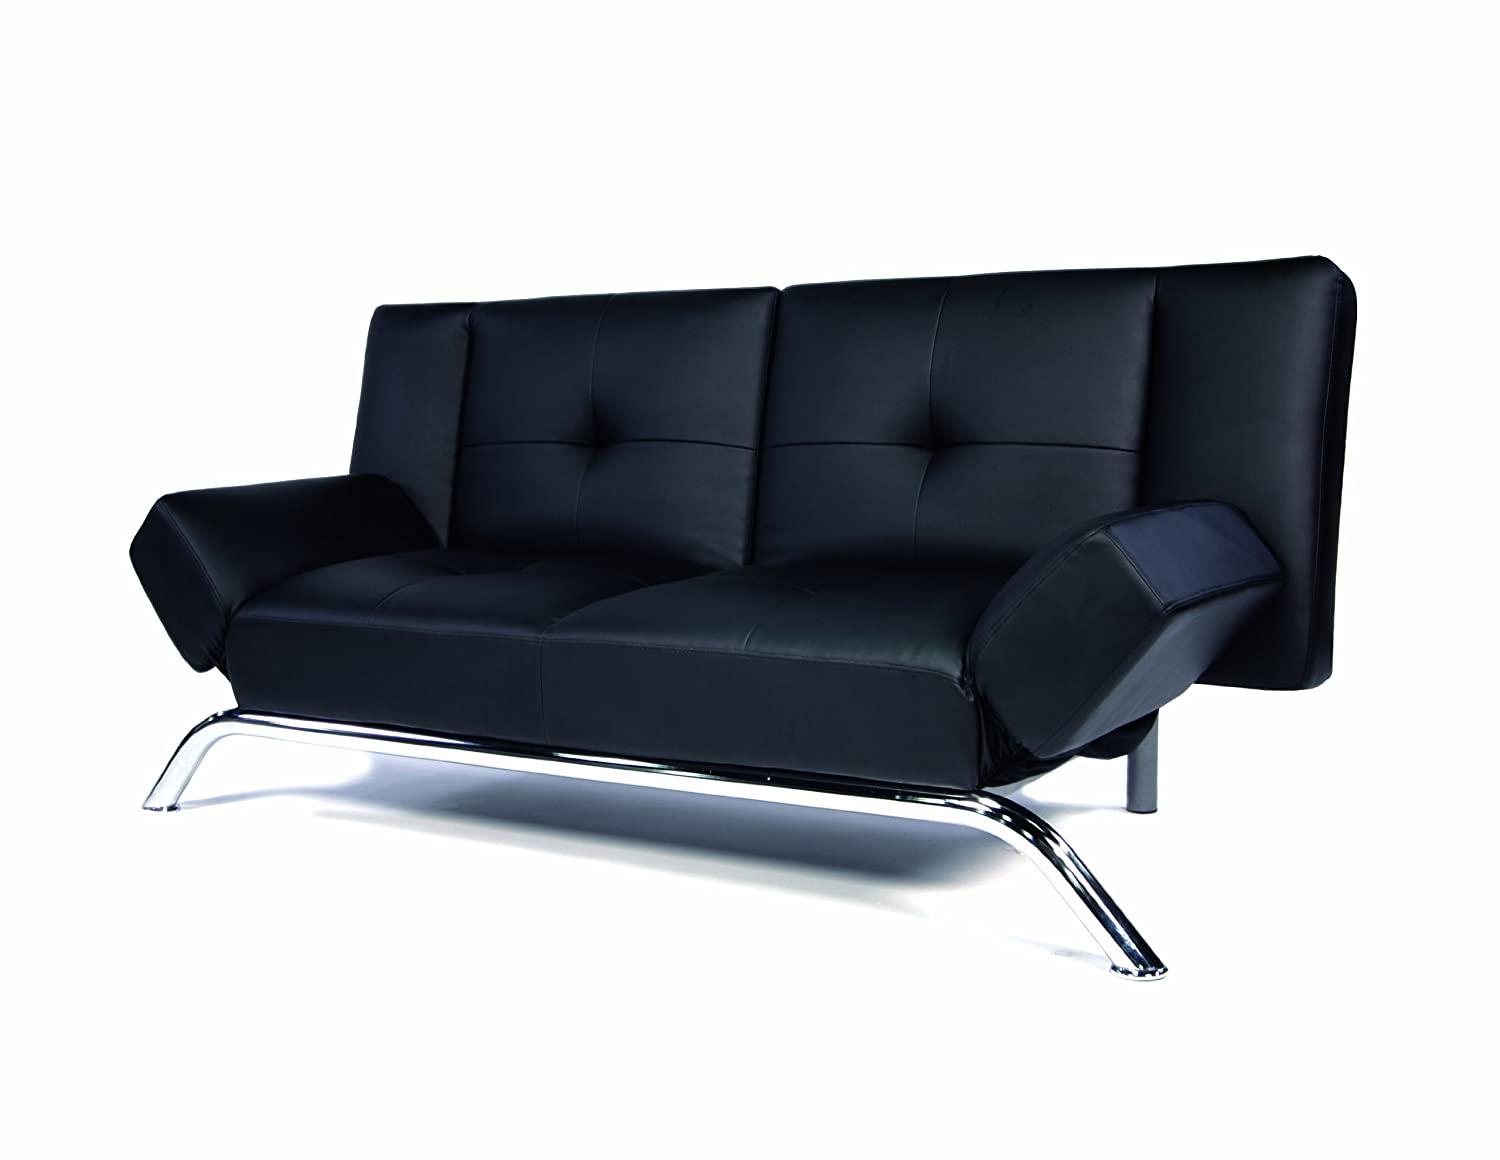 DHP Emma Convertible Sleeper Futon - Black